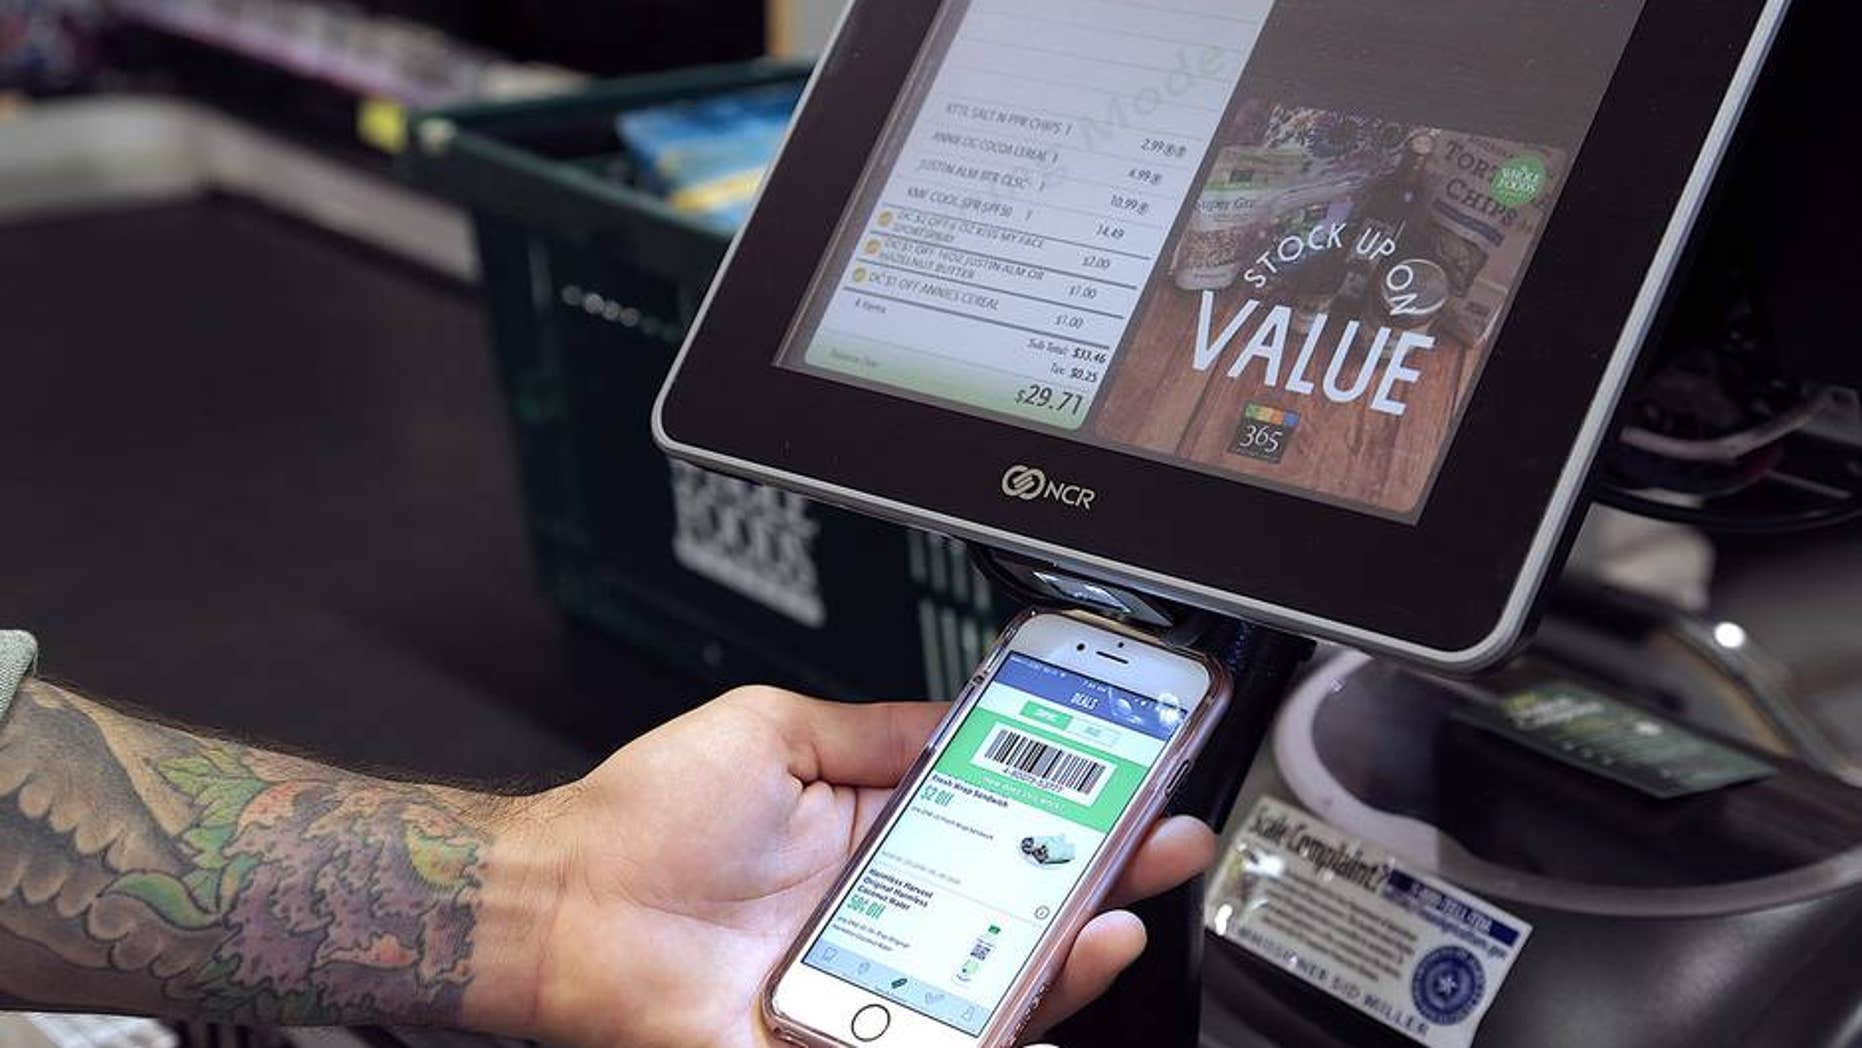 Whole Foods new rewards program works via smartphone app.